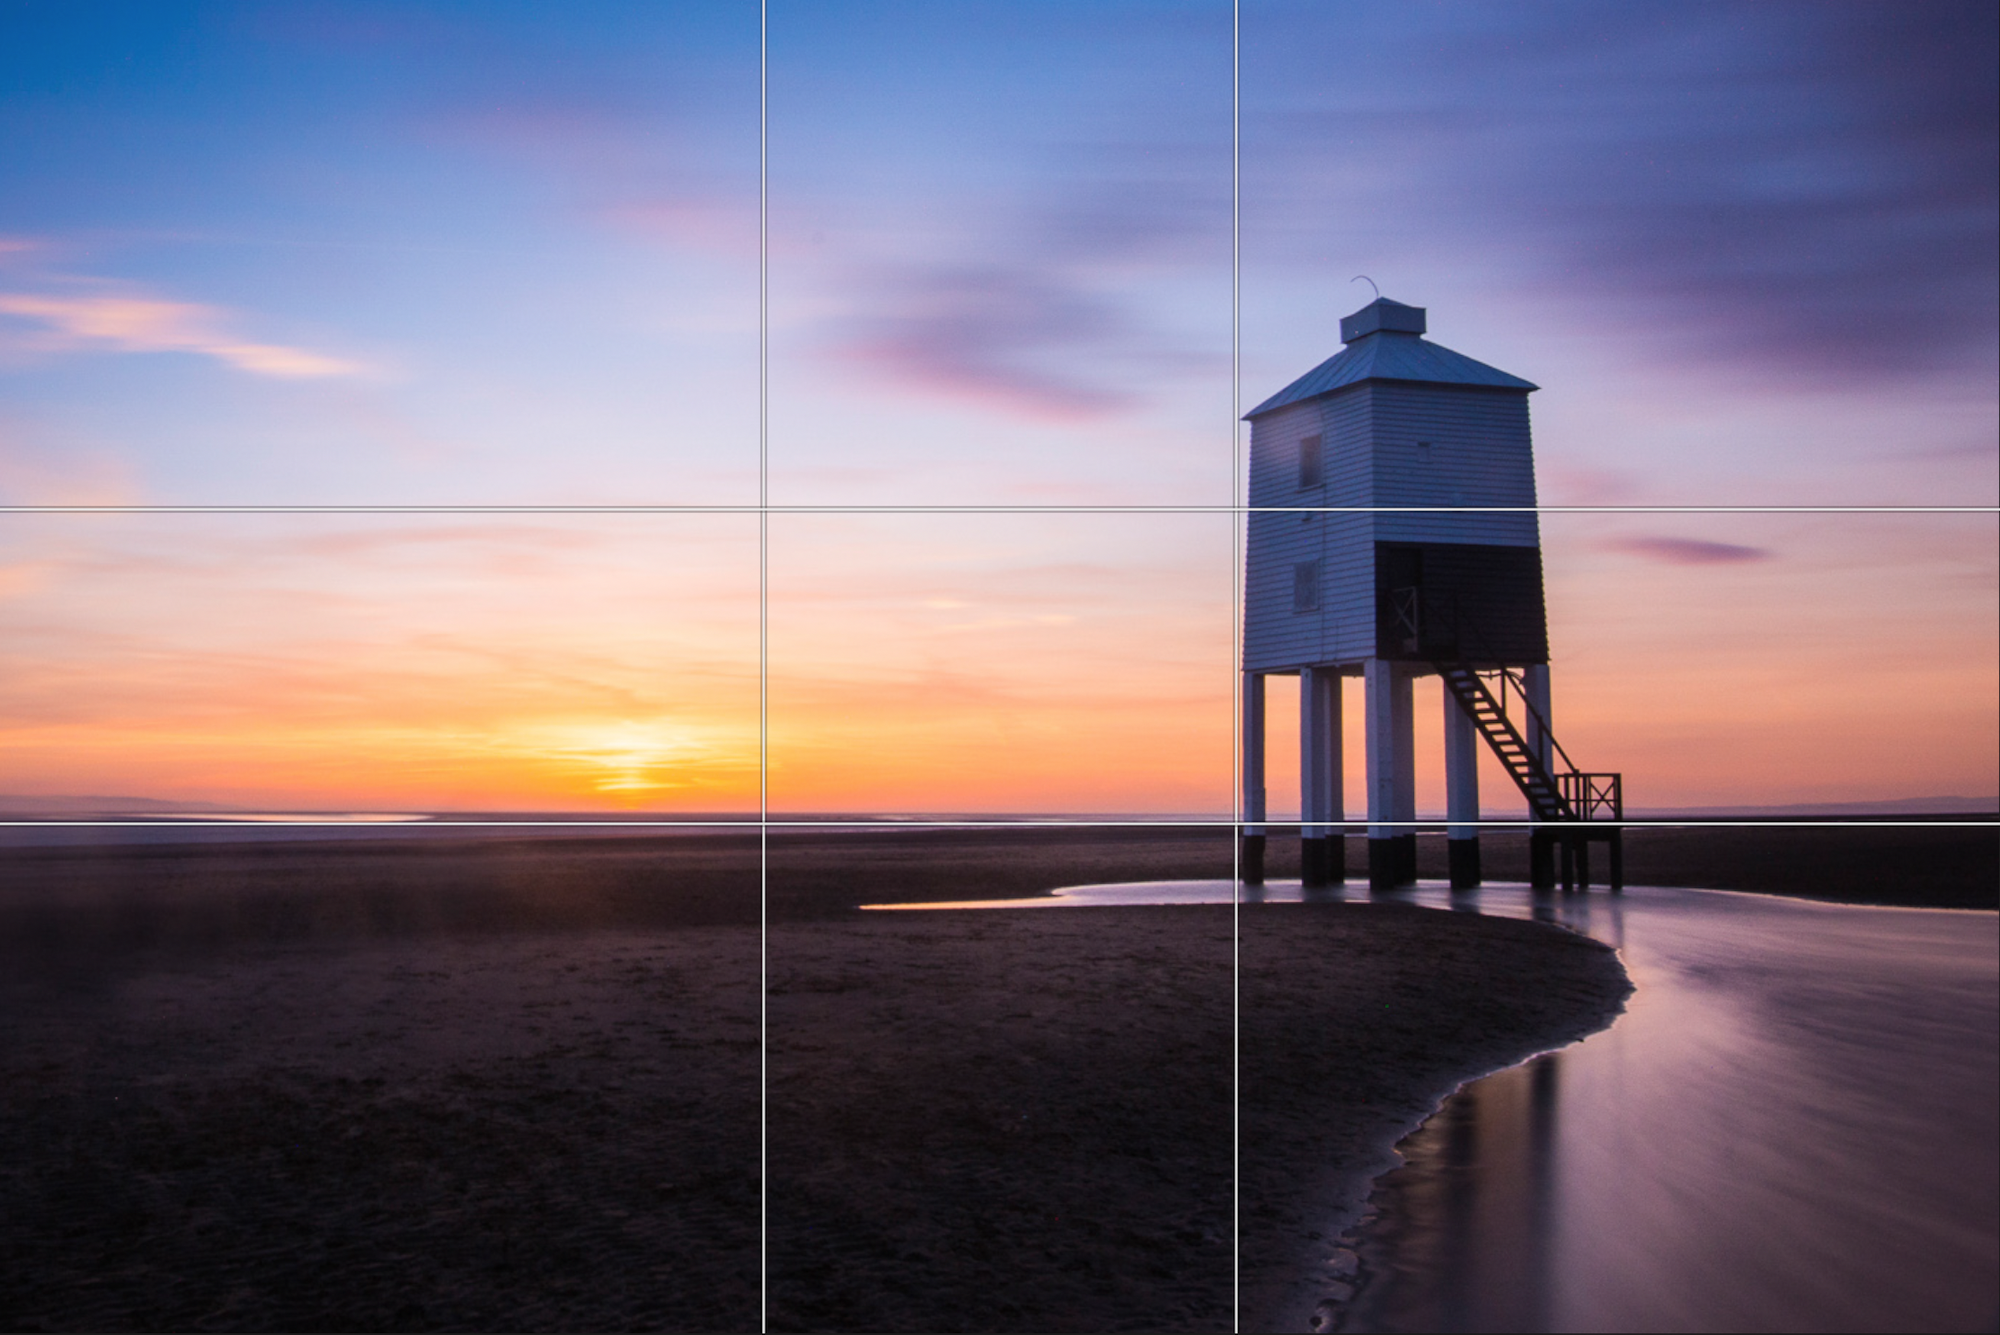 Seascape captured with the 'Golden Ratio' composition rules